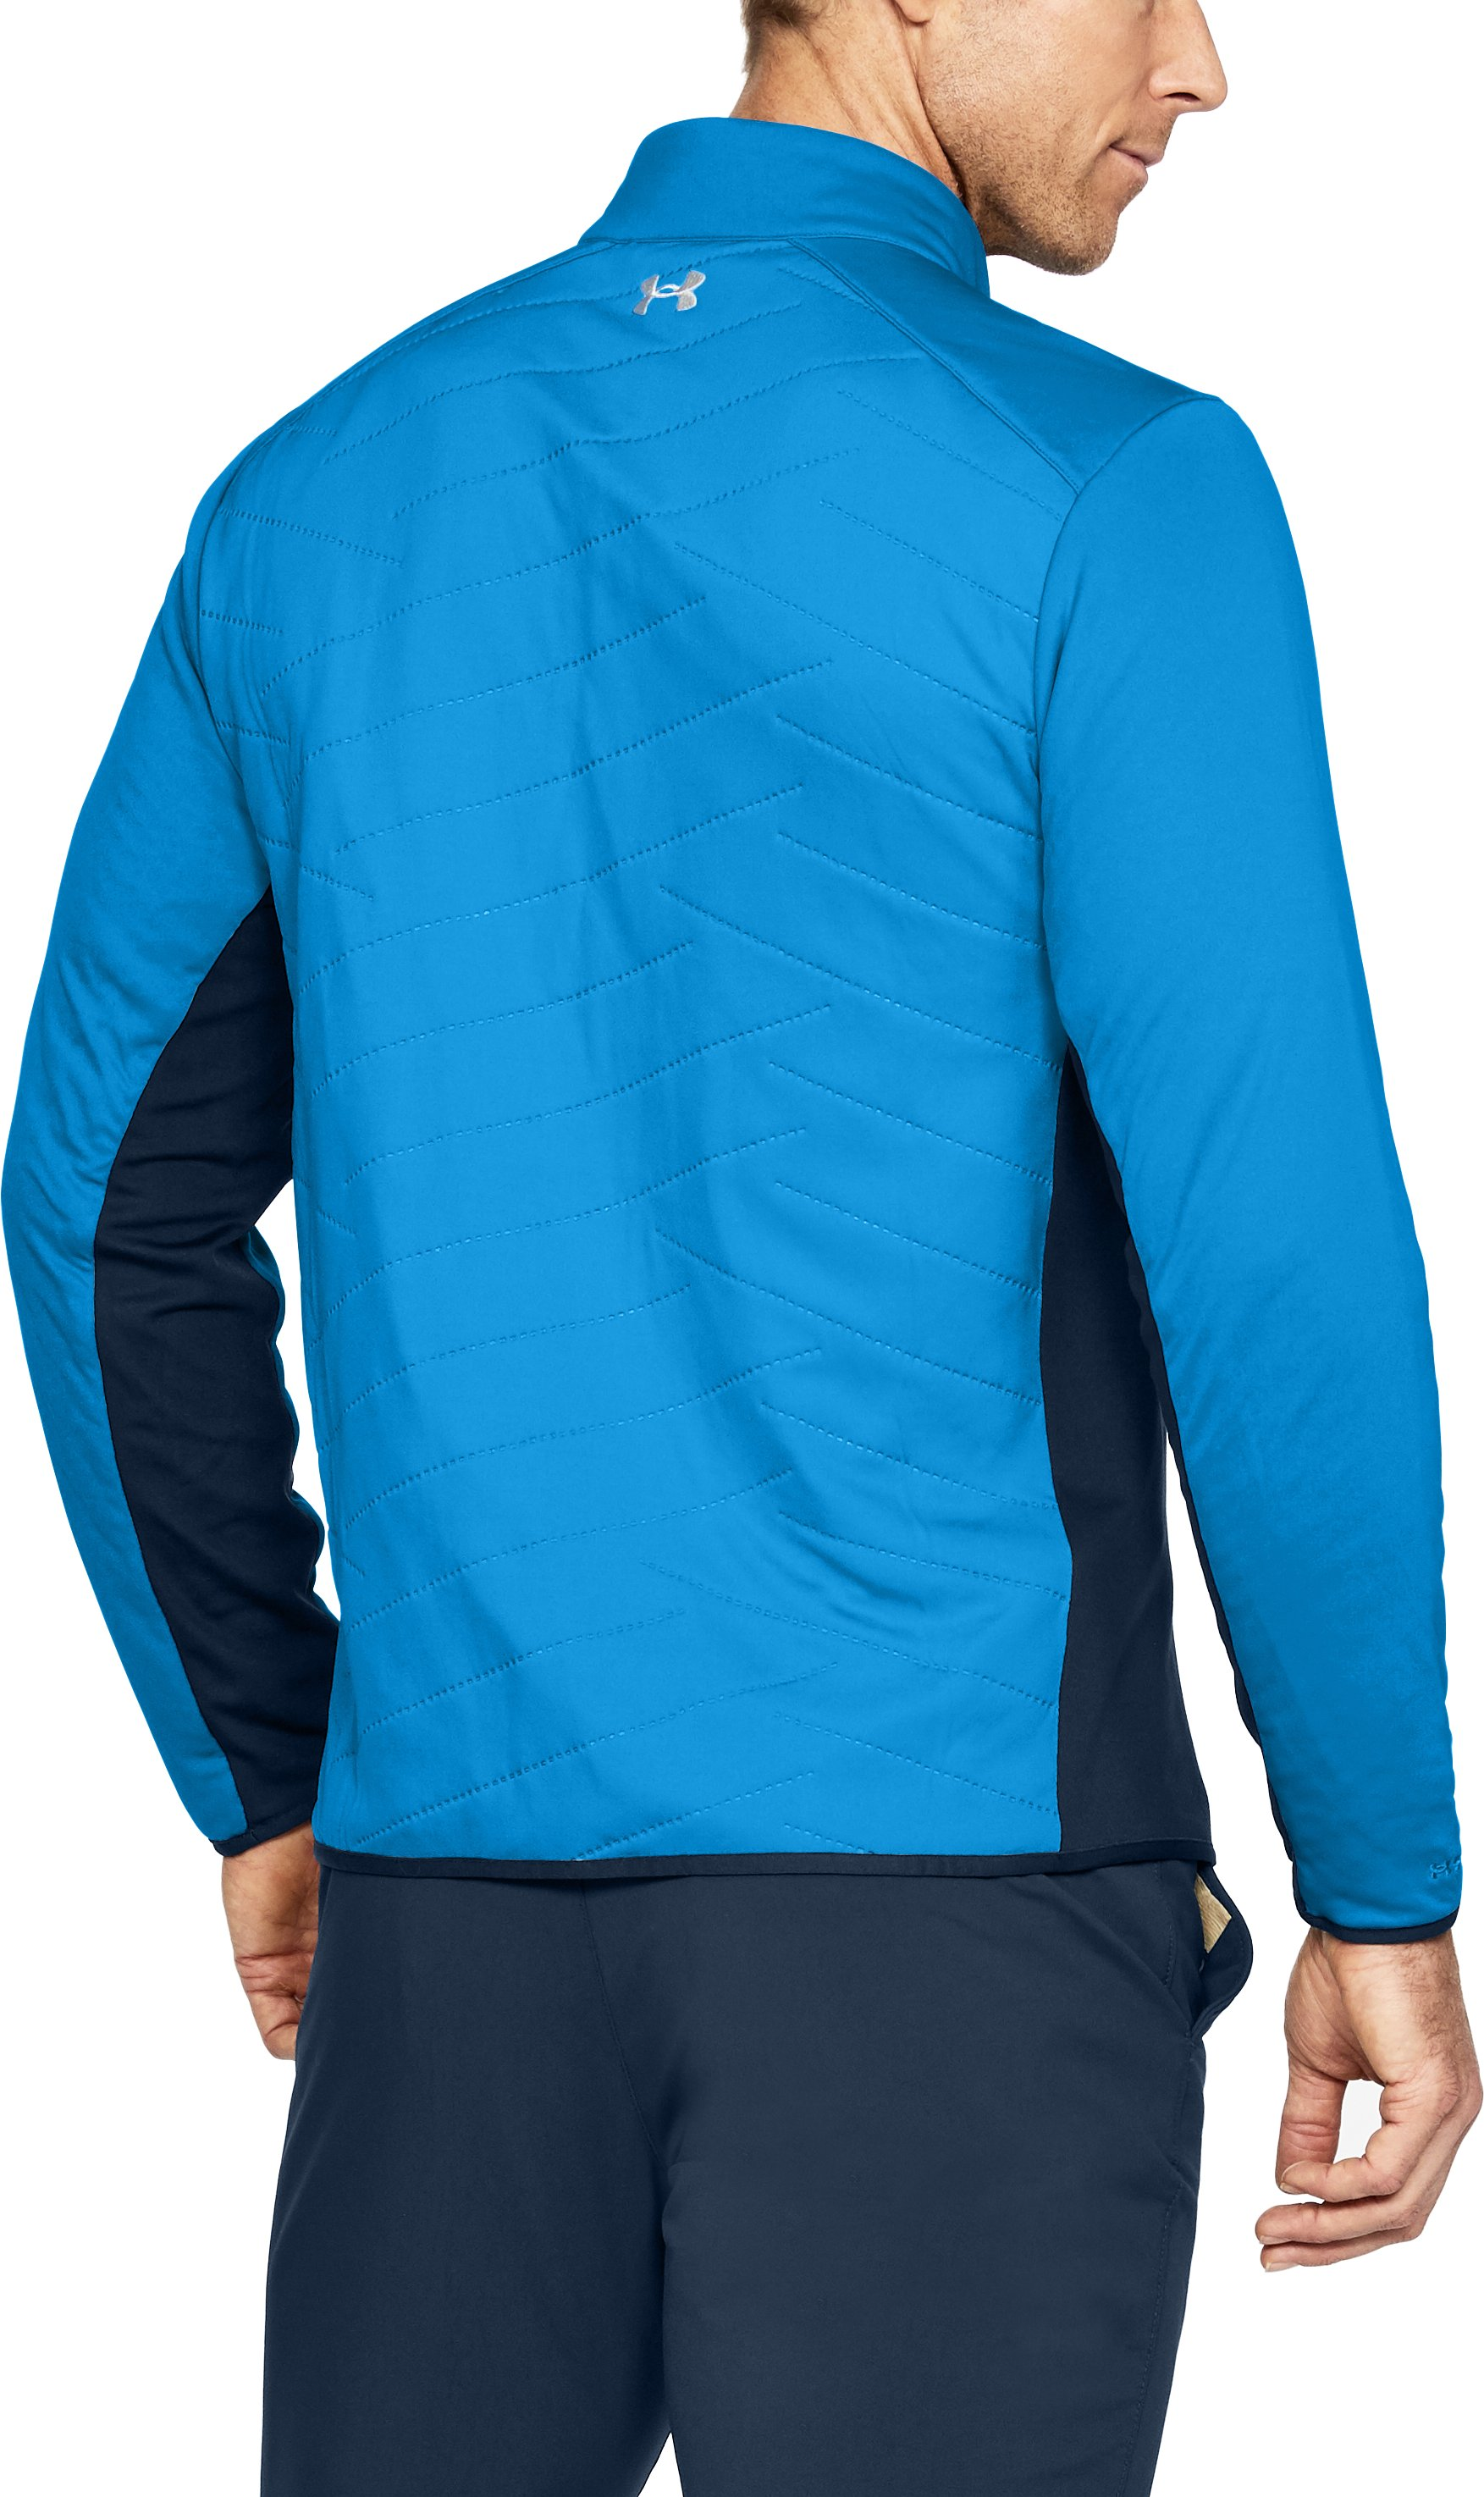 Men's ColdGear® Reactor Hybrid ½ Zip, MAKO BLUE, undefined